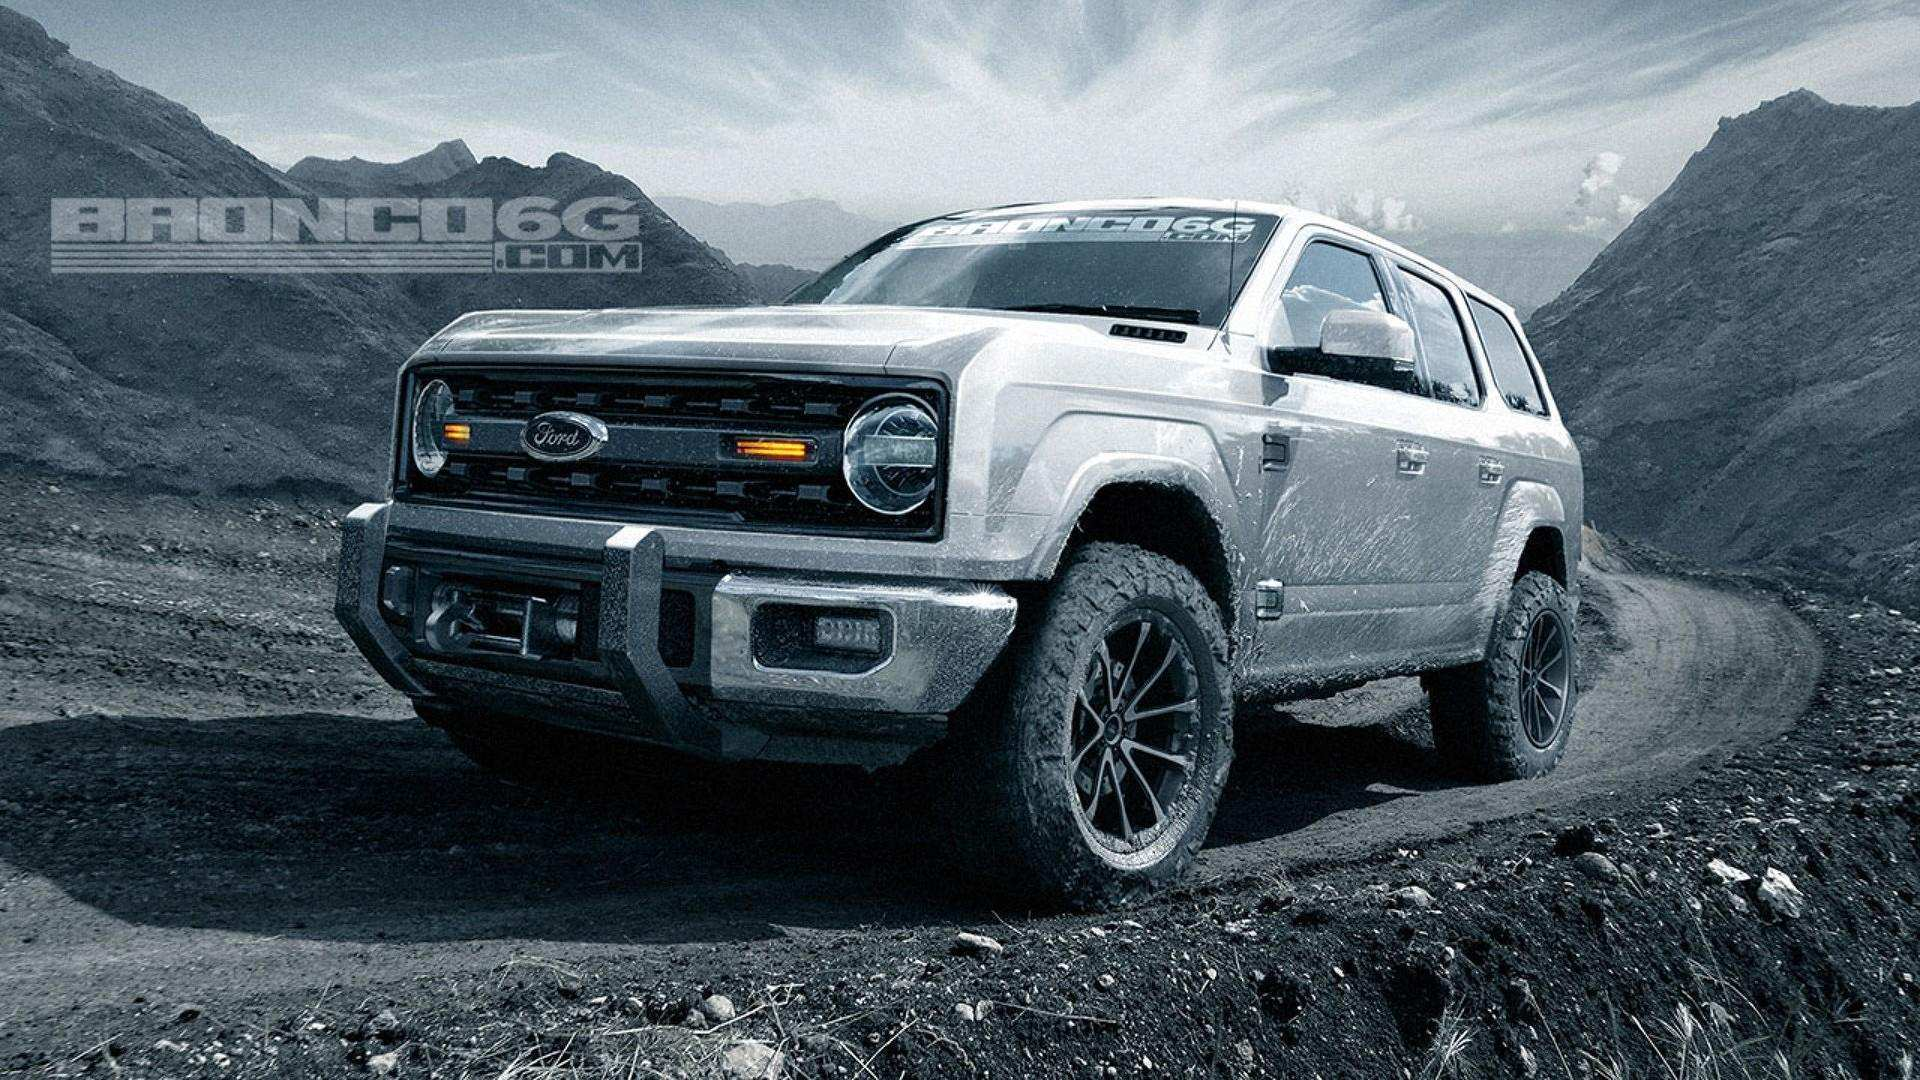 99 All New 2020 Ford Bronco Exterior with 2020 Ford Bronco